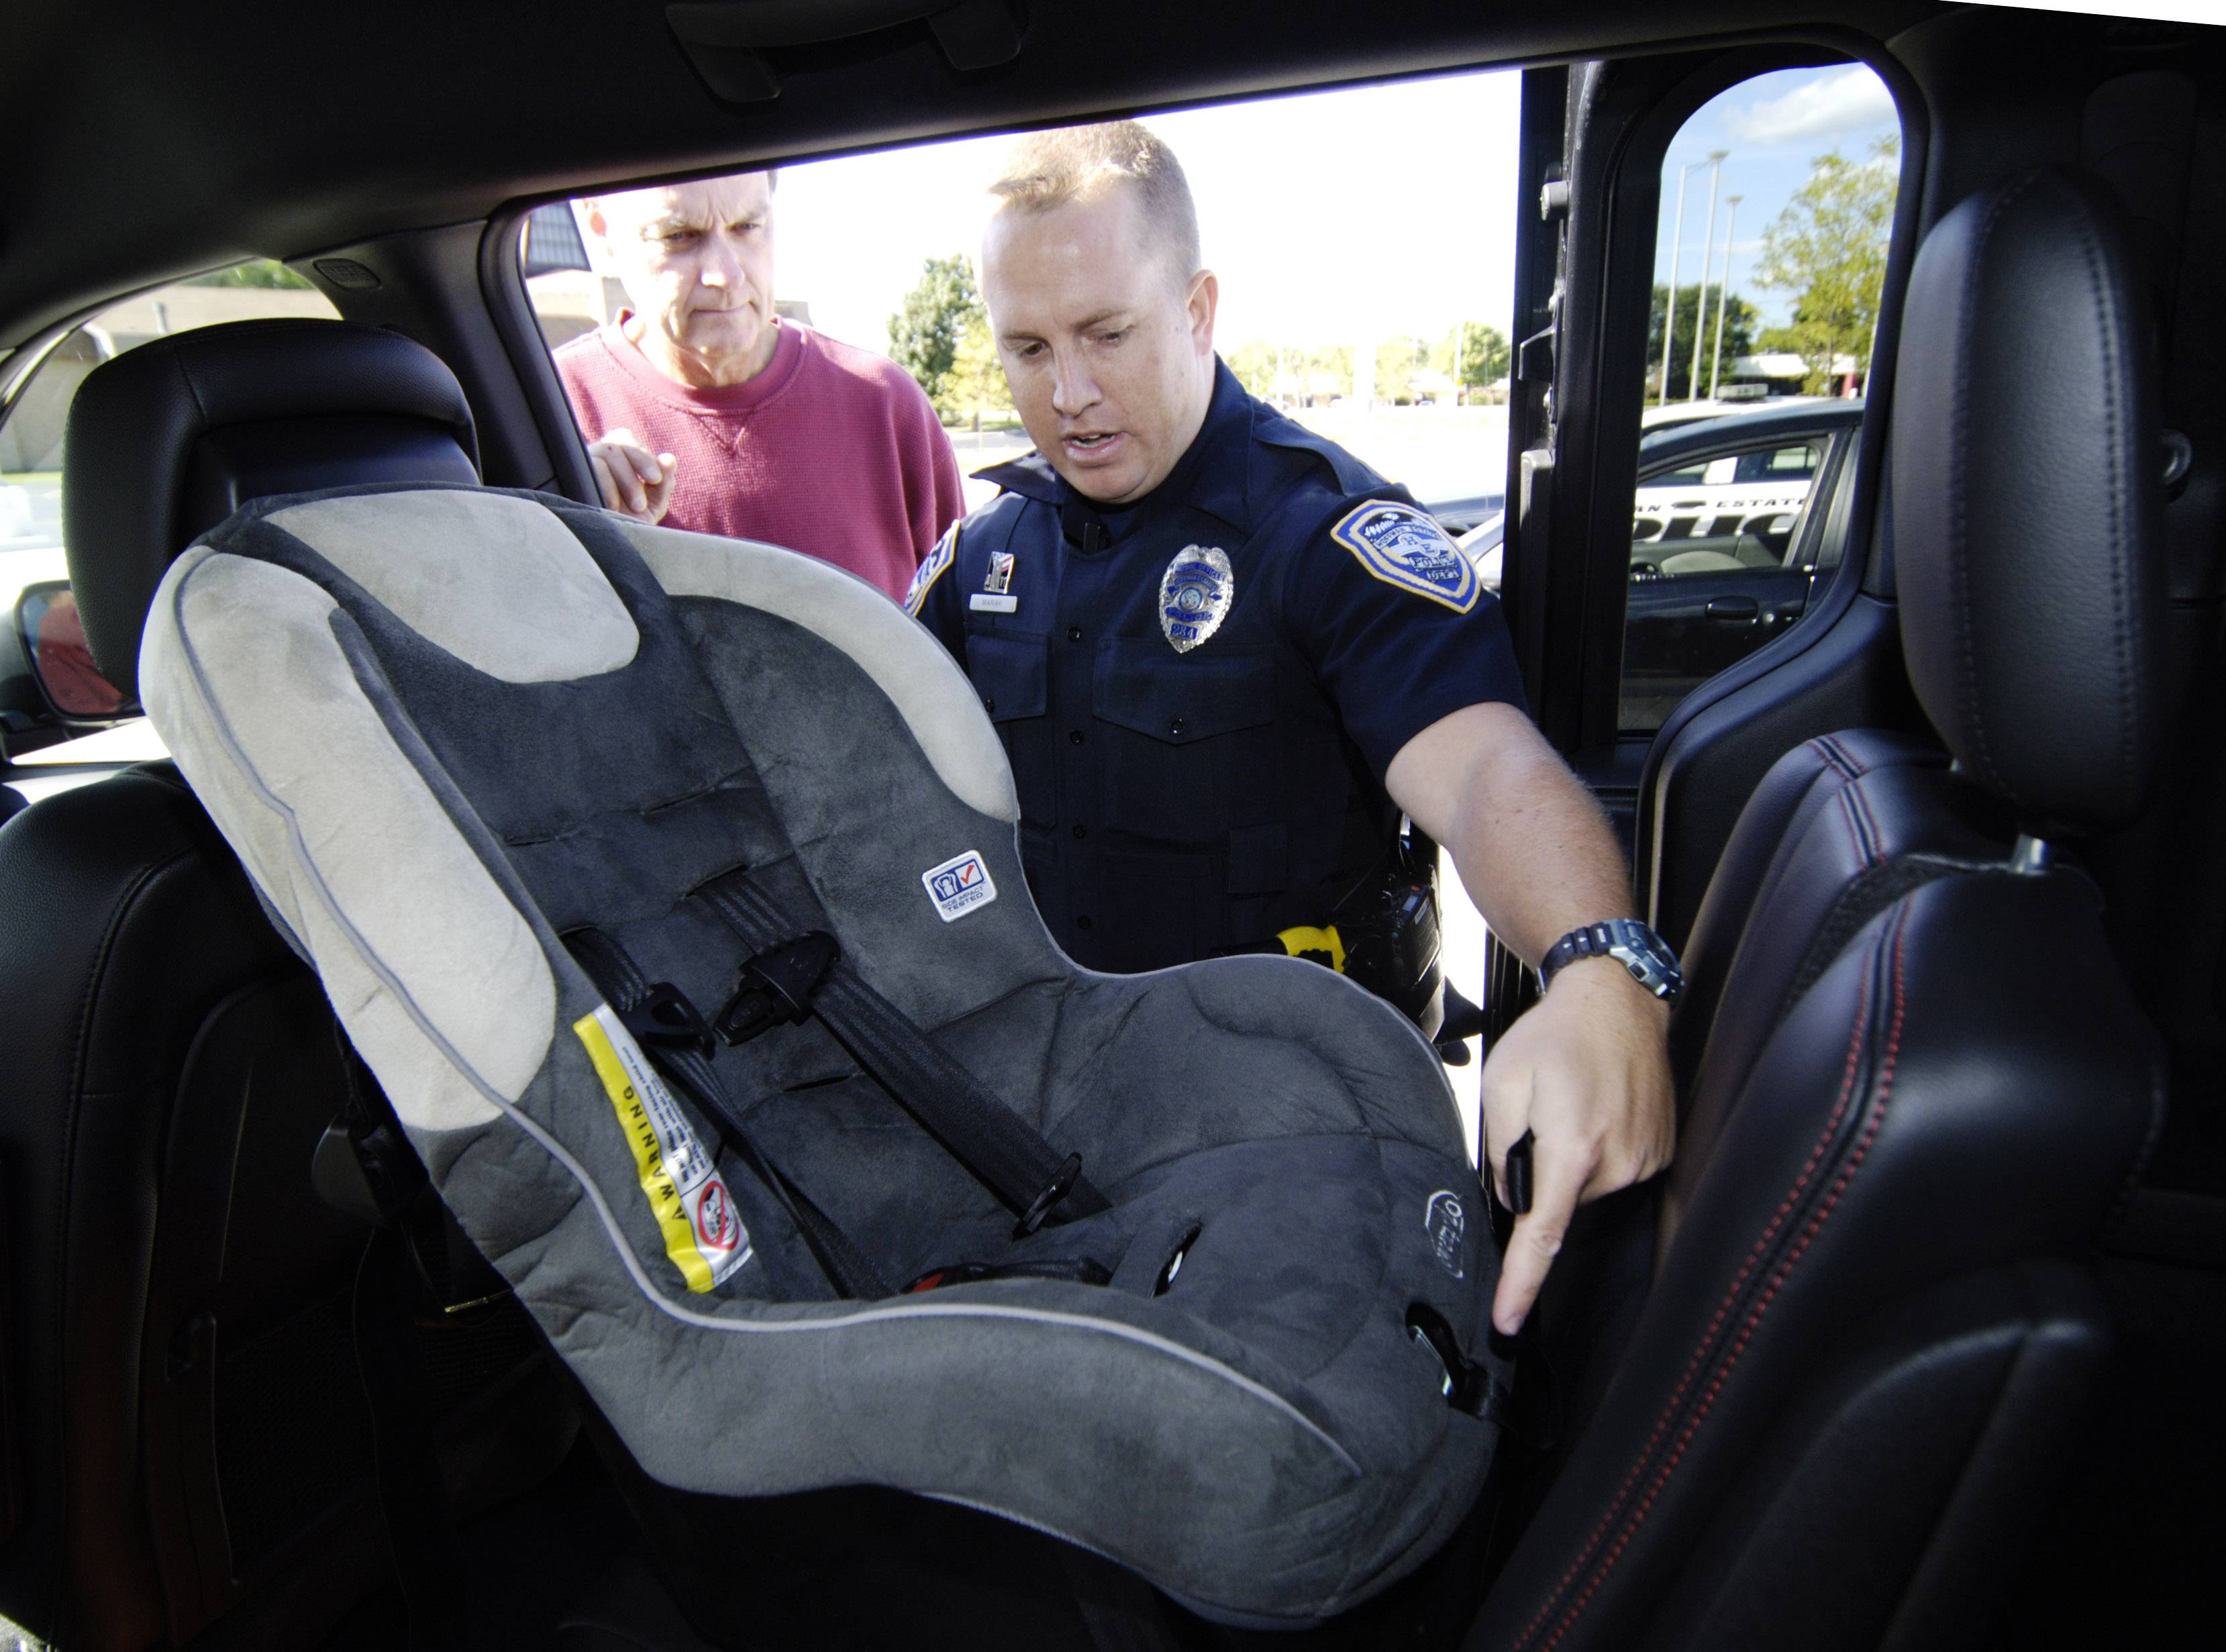 We go to great lengths to ensure child seats in cars are properly installed. Why then, safety advocates wonder, aren't they required for kids 2 and under in airplanes?